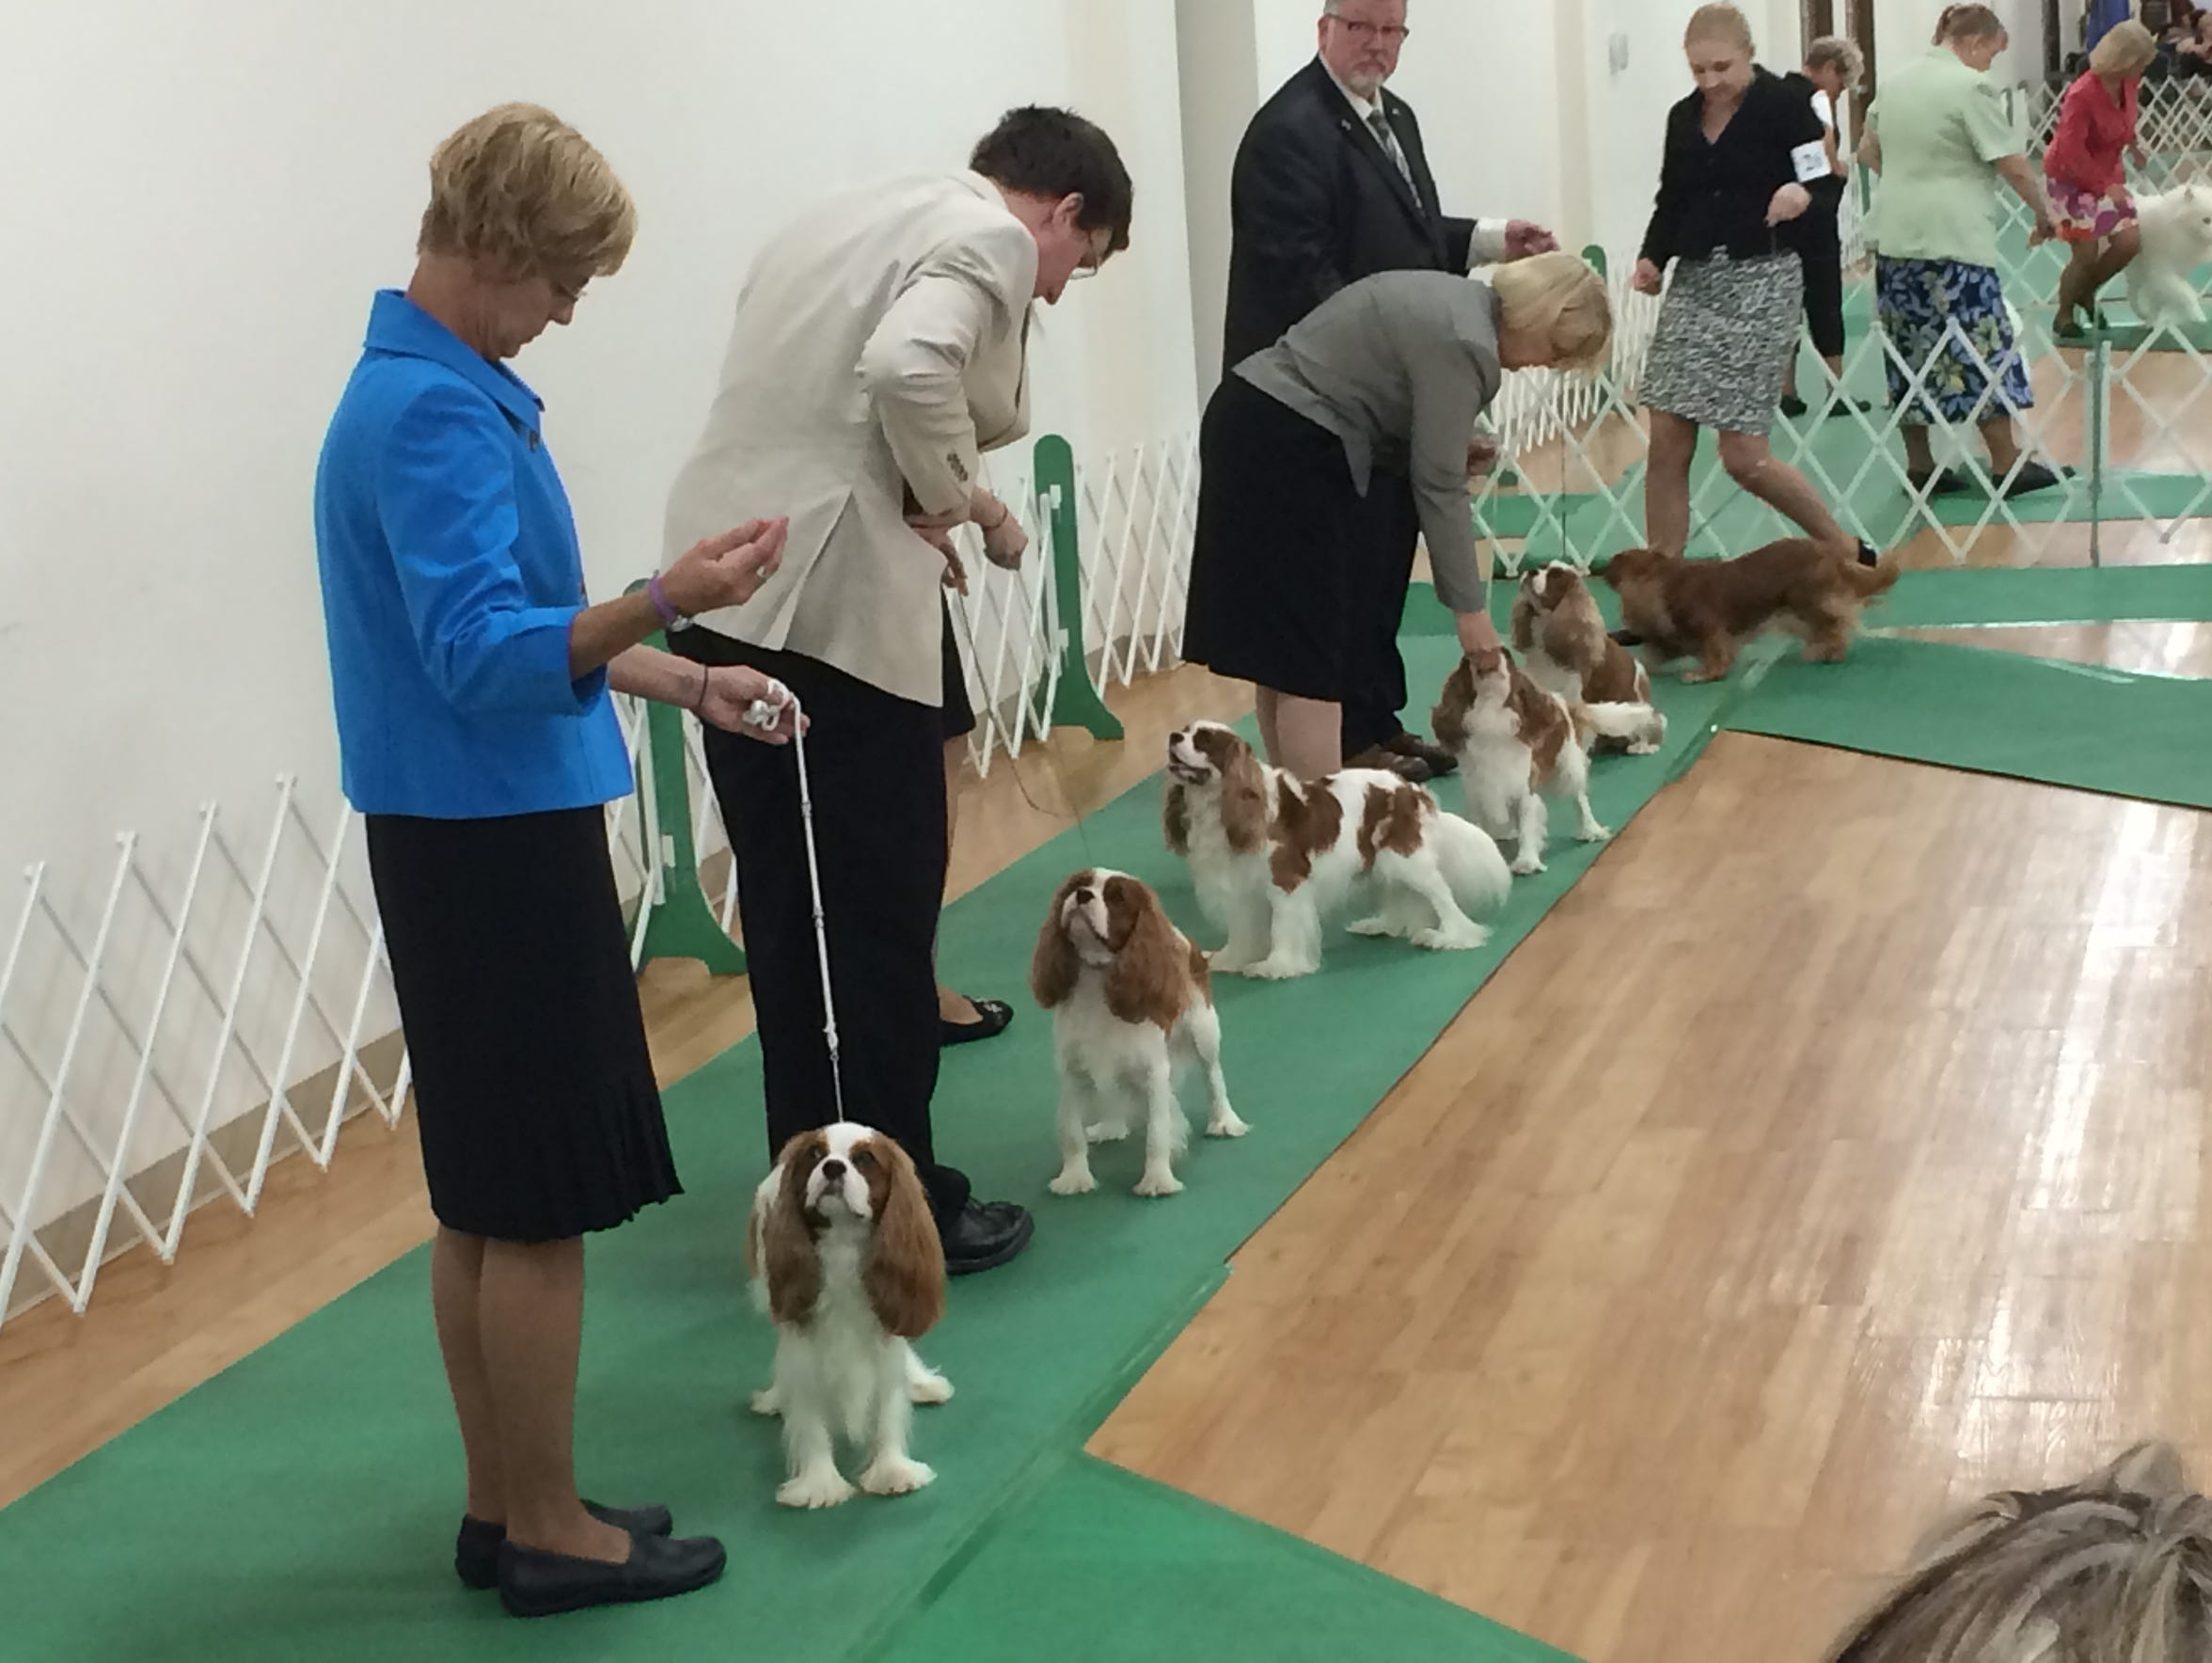 Dogs from the the Cavalier King Charles Spaniel group